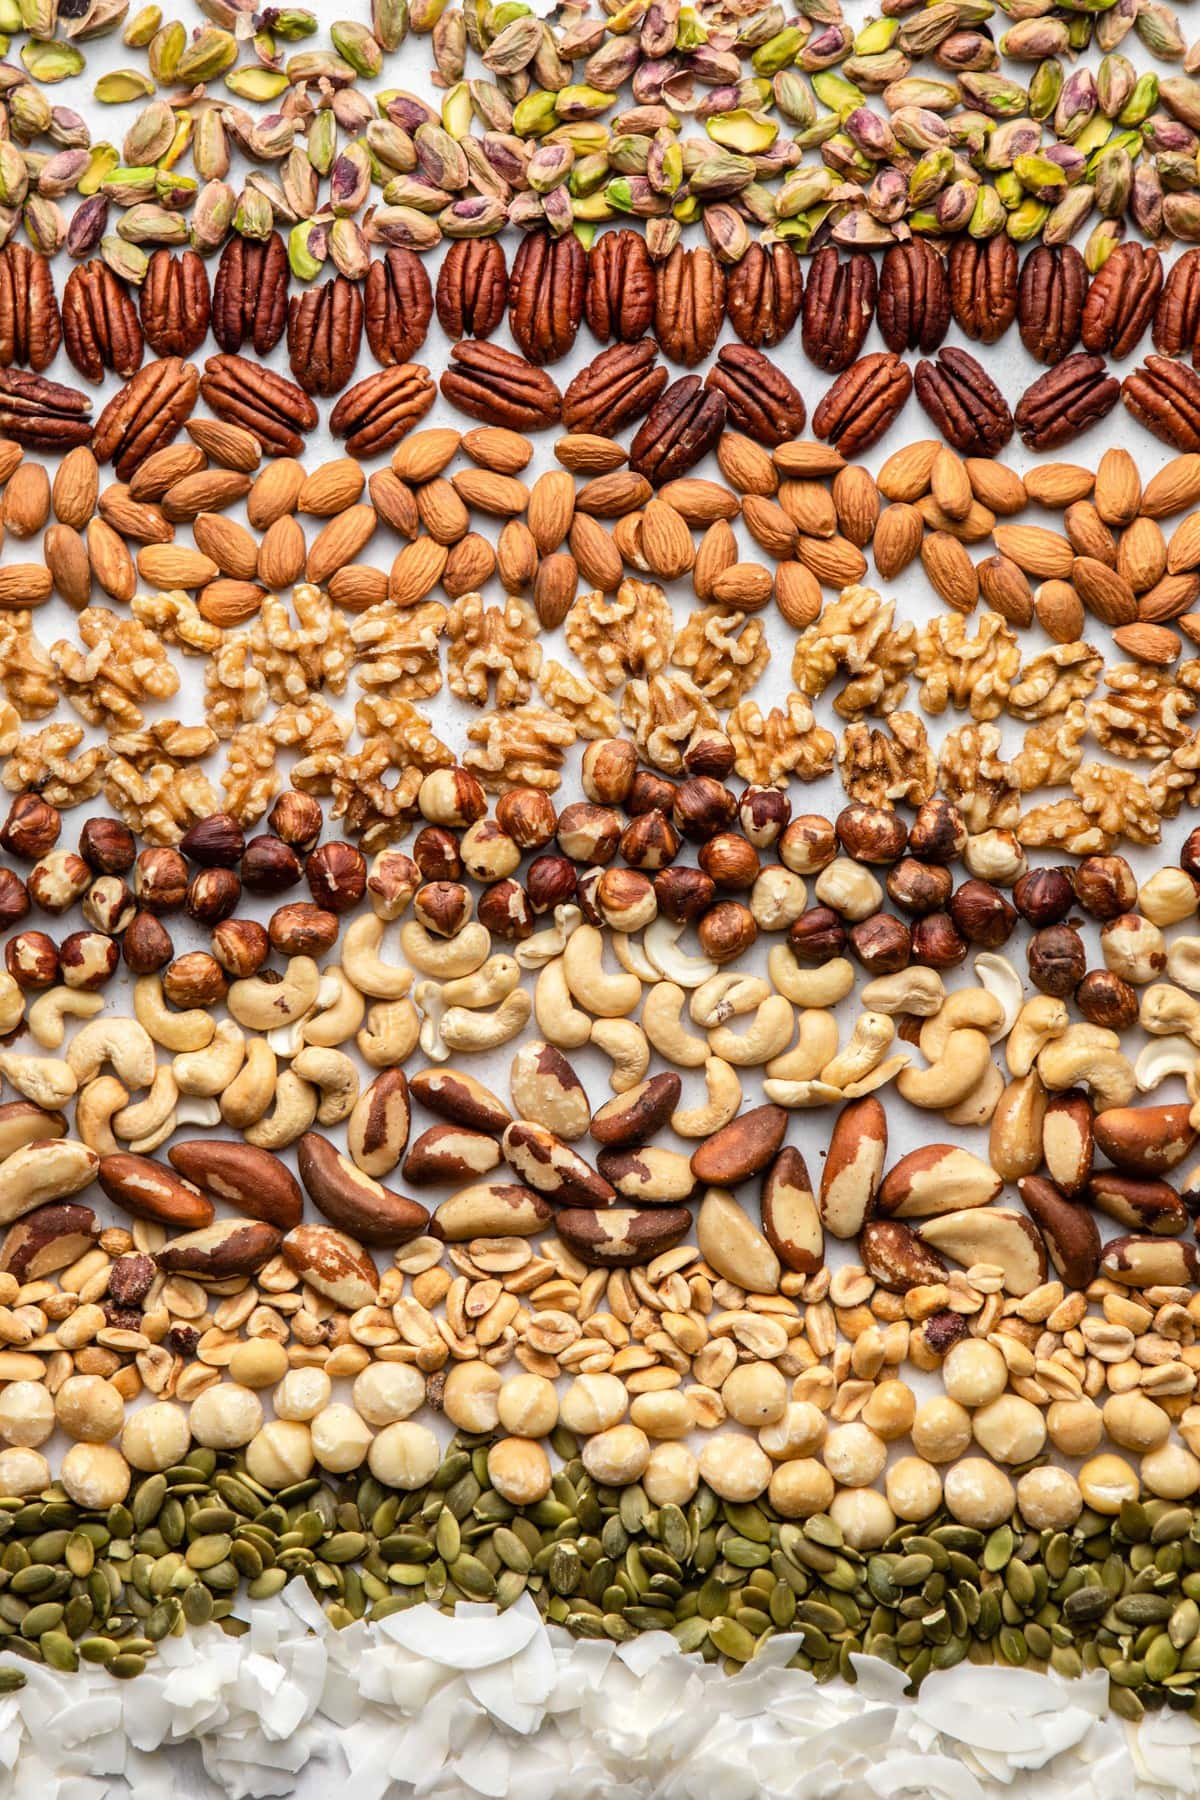 collage of nuts and seeds on white background